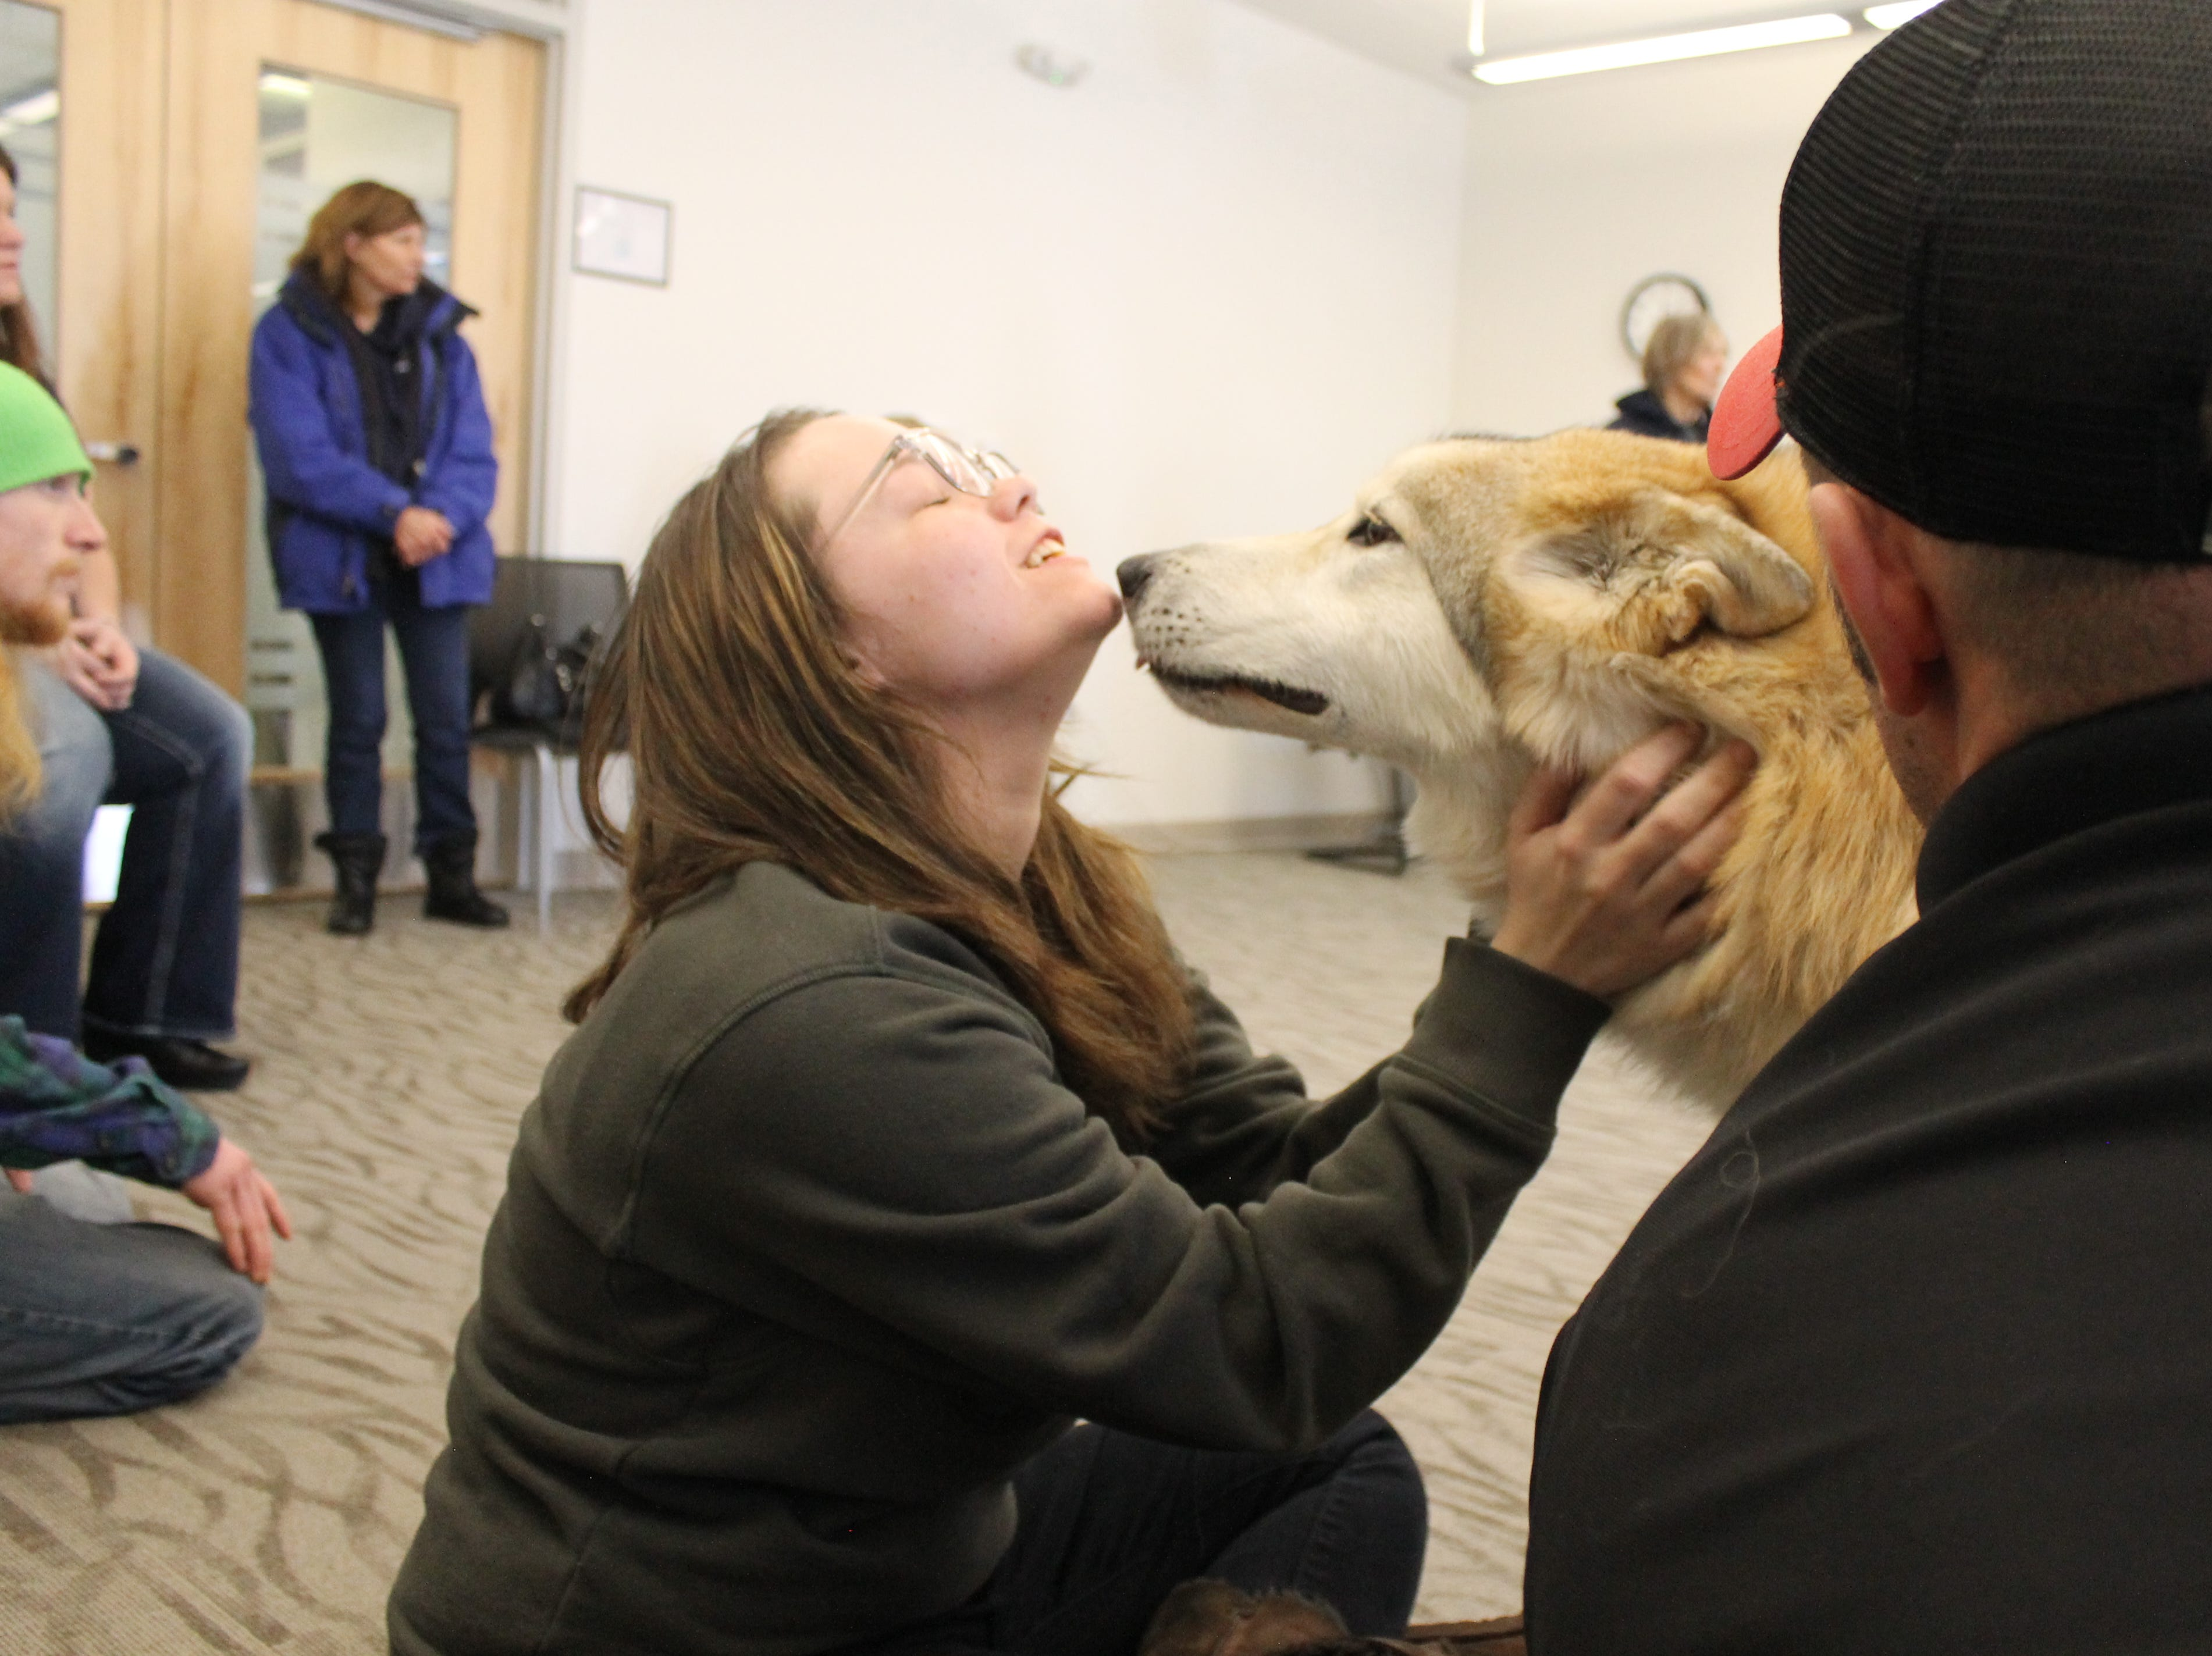 Kaity Doyle pets Takota, a wolf dog, during class at Front Range Community College Jan. 25. Doyle's design class will work for the next couple weeks on a project to benefit the W.O.L.F. Sanctuary.